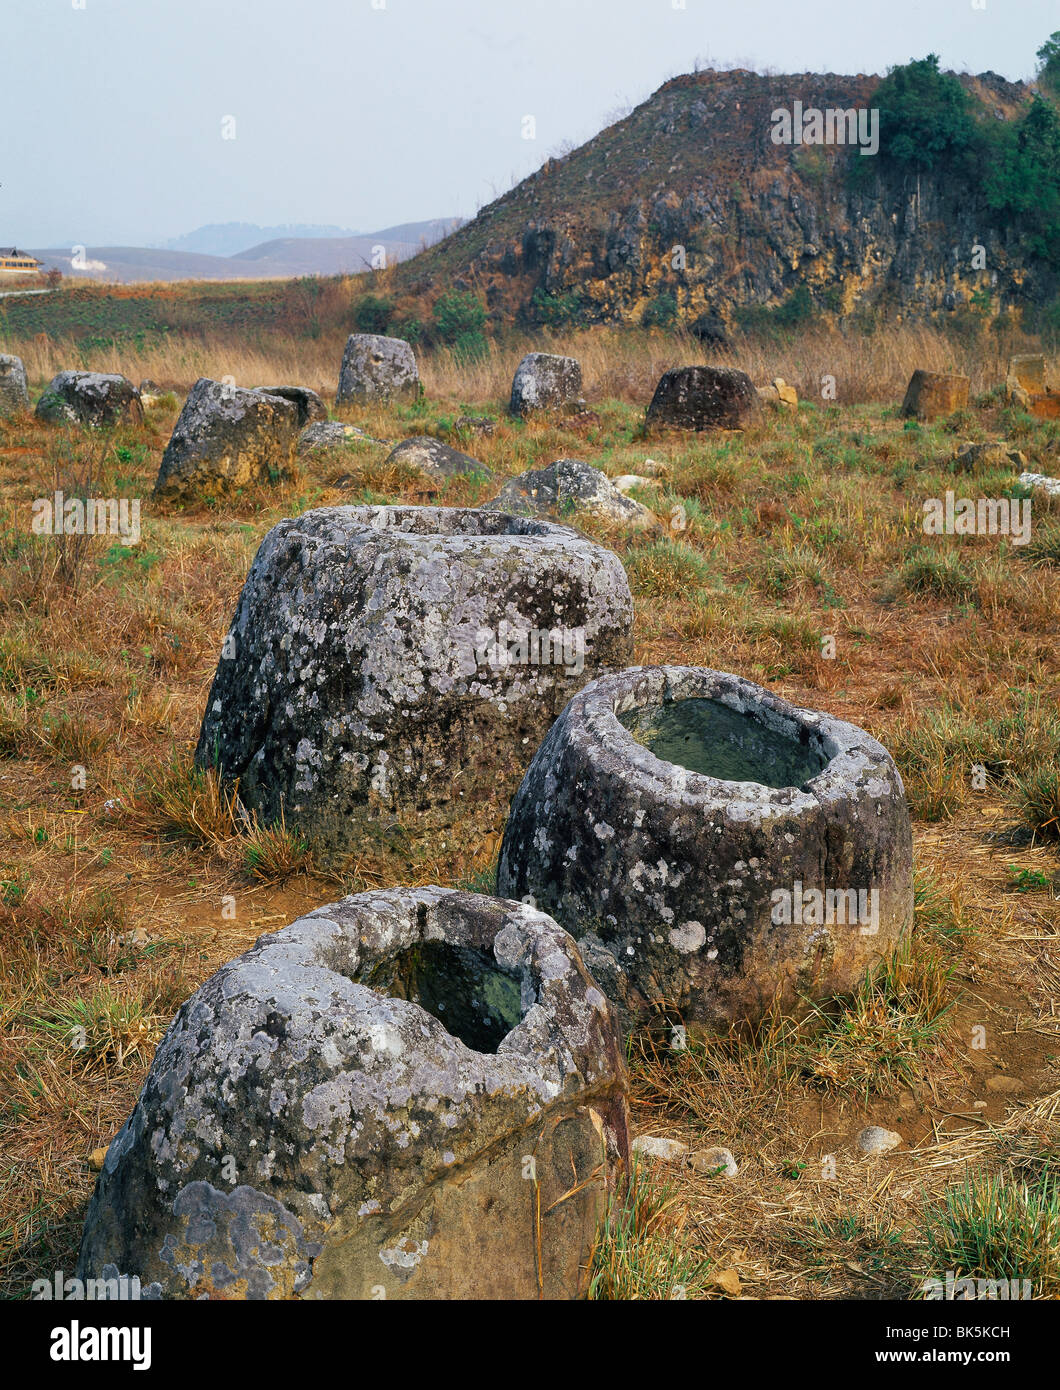 Plain of Jars, site of over 300 jars between 1500 and 2000 years old, Annamese Cordillera, Northern Laos, - Stock Image